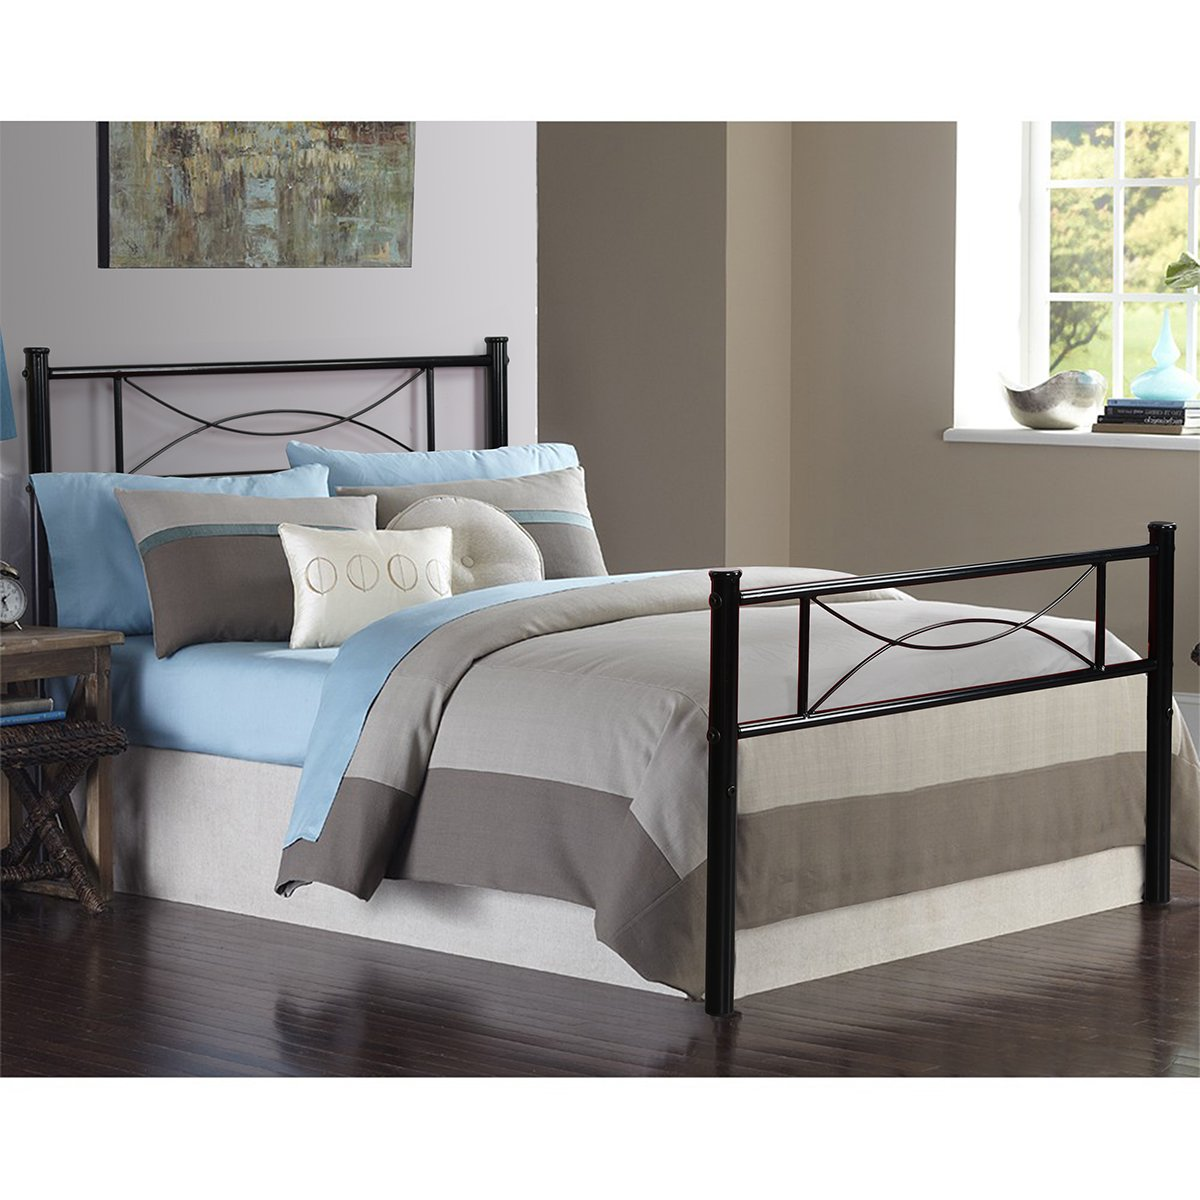 Amazon Com Bestmassage Twin Size Daybed Frame Metal Sofa